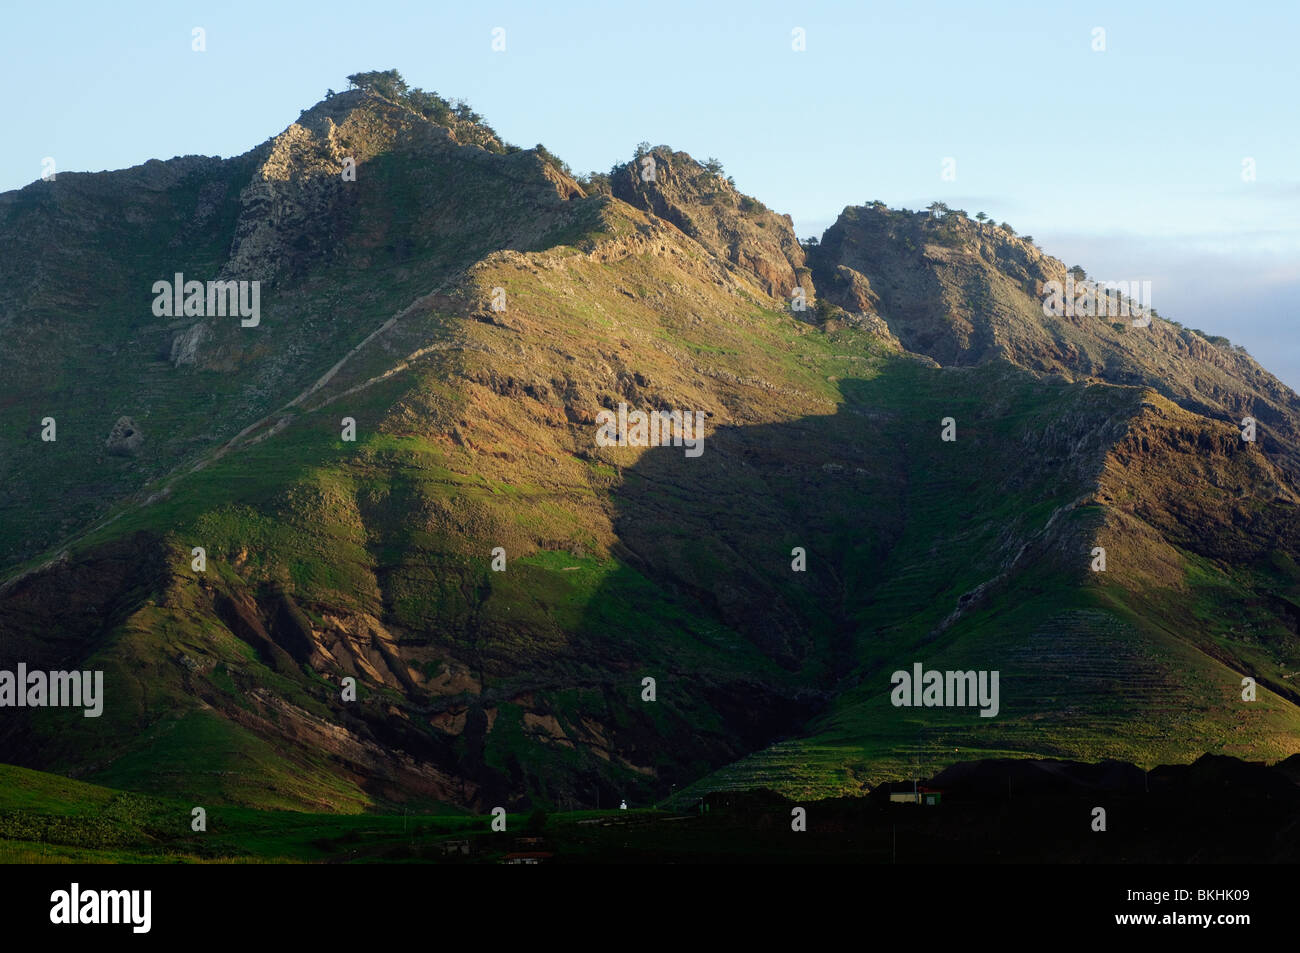 Early morning light on rugged peaks of Porto Santo, the neighbouring island to Madeira - Stock Image